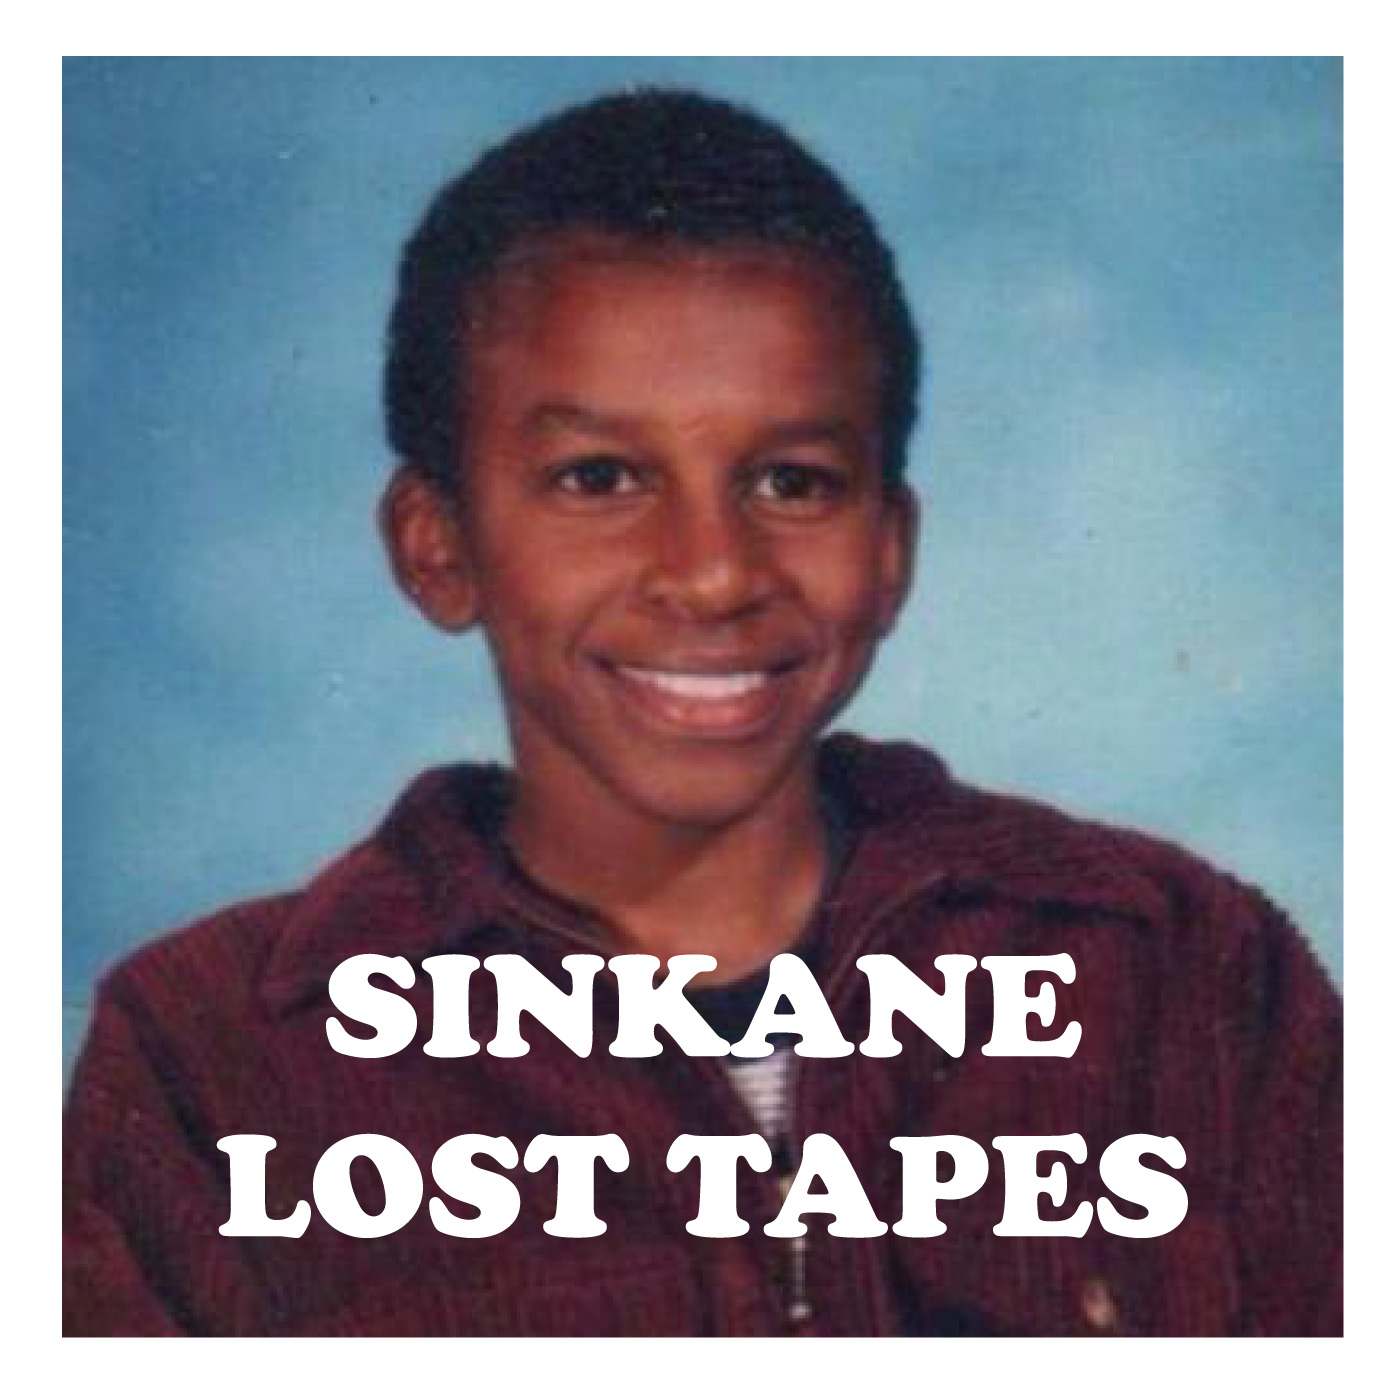 SINKANE drops 'Lost Tapes' collection of rarities